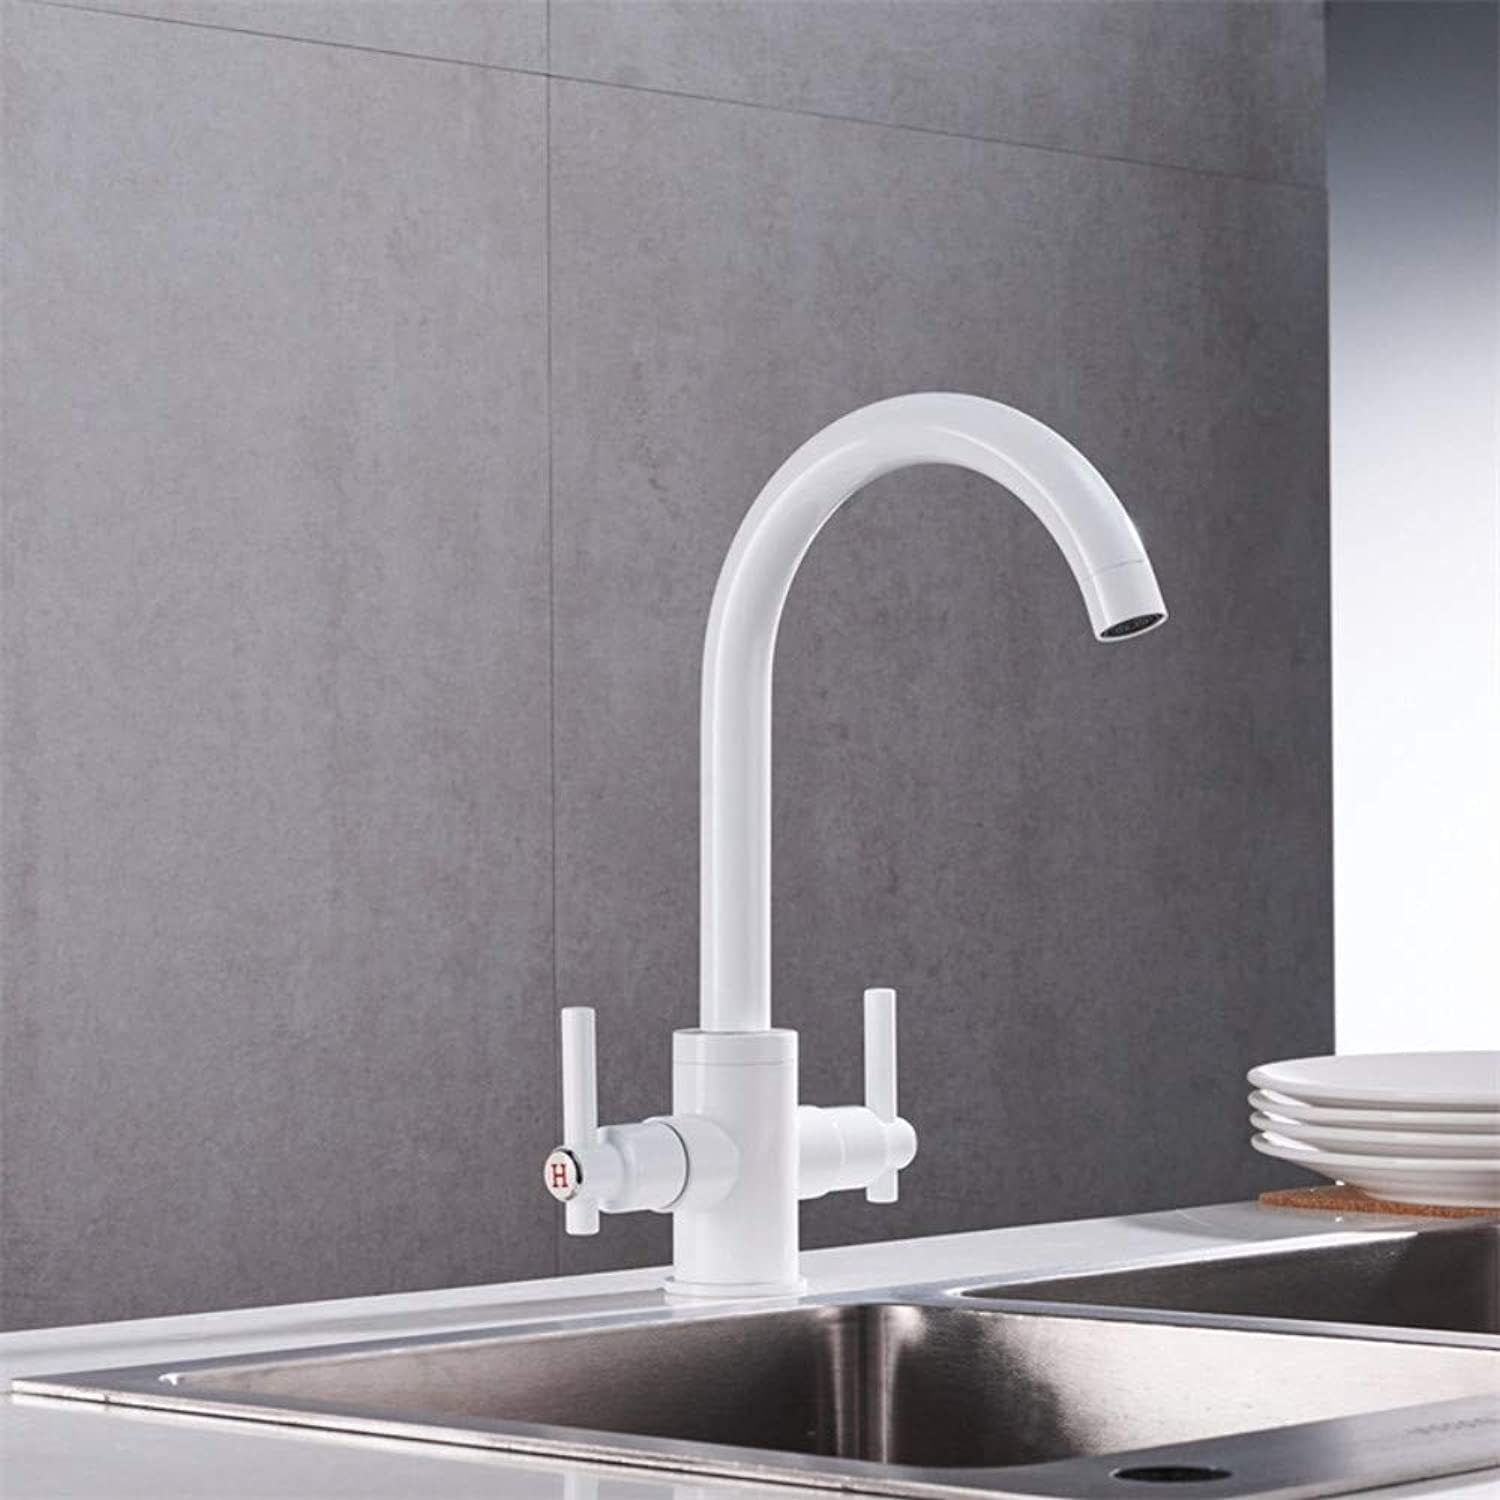 Kitchen Faucets Double Hands Round Bathroom Sinks Wall-in Taps Double Hole Mix Water Tap W005